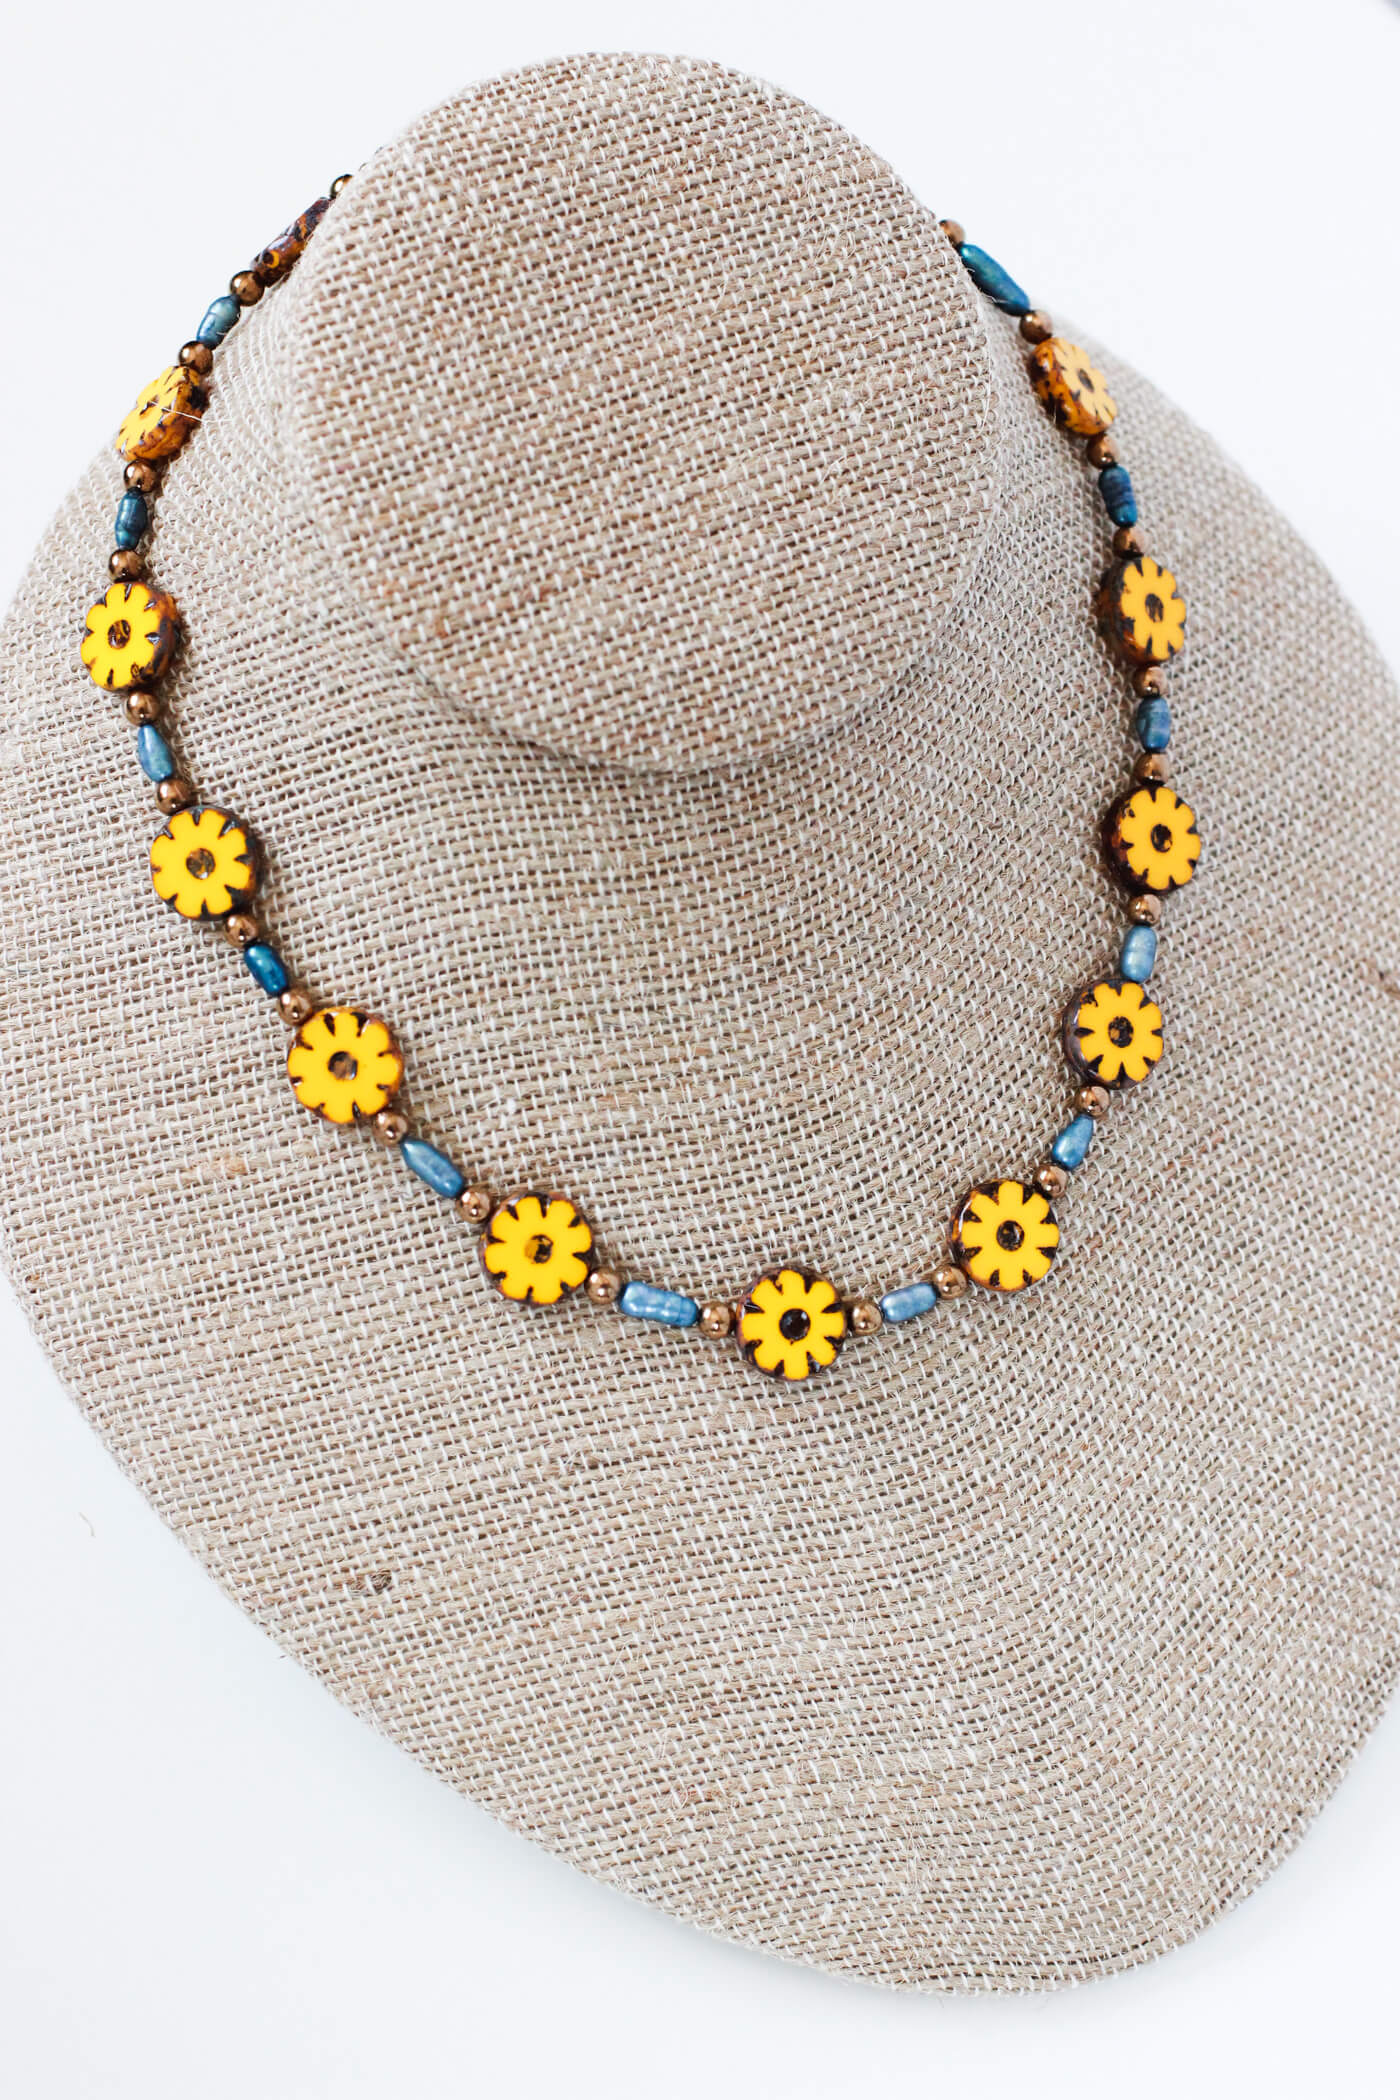 Boho Beaded Necklace – A Delightful Women's Choker Necklace by Kaleidoscopes And Polka Dots